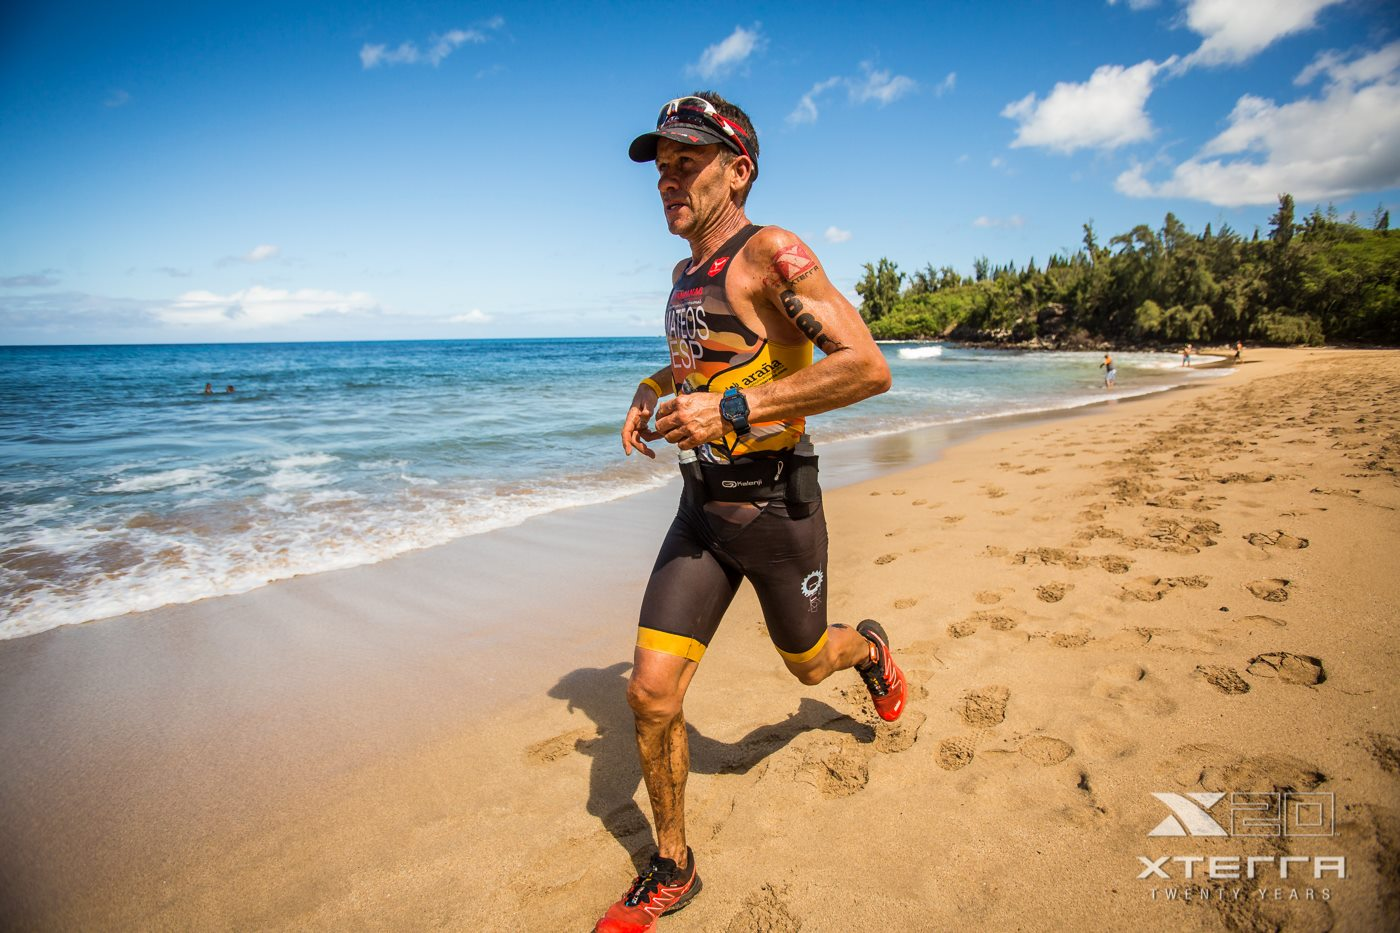 XTERRA_WORLD_CHAMPIONSHIP_2015_00065